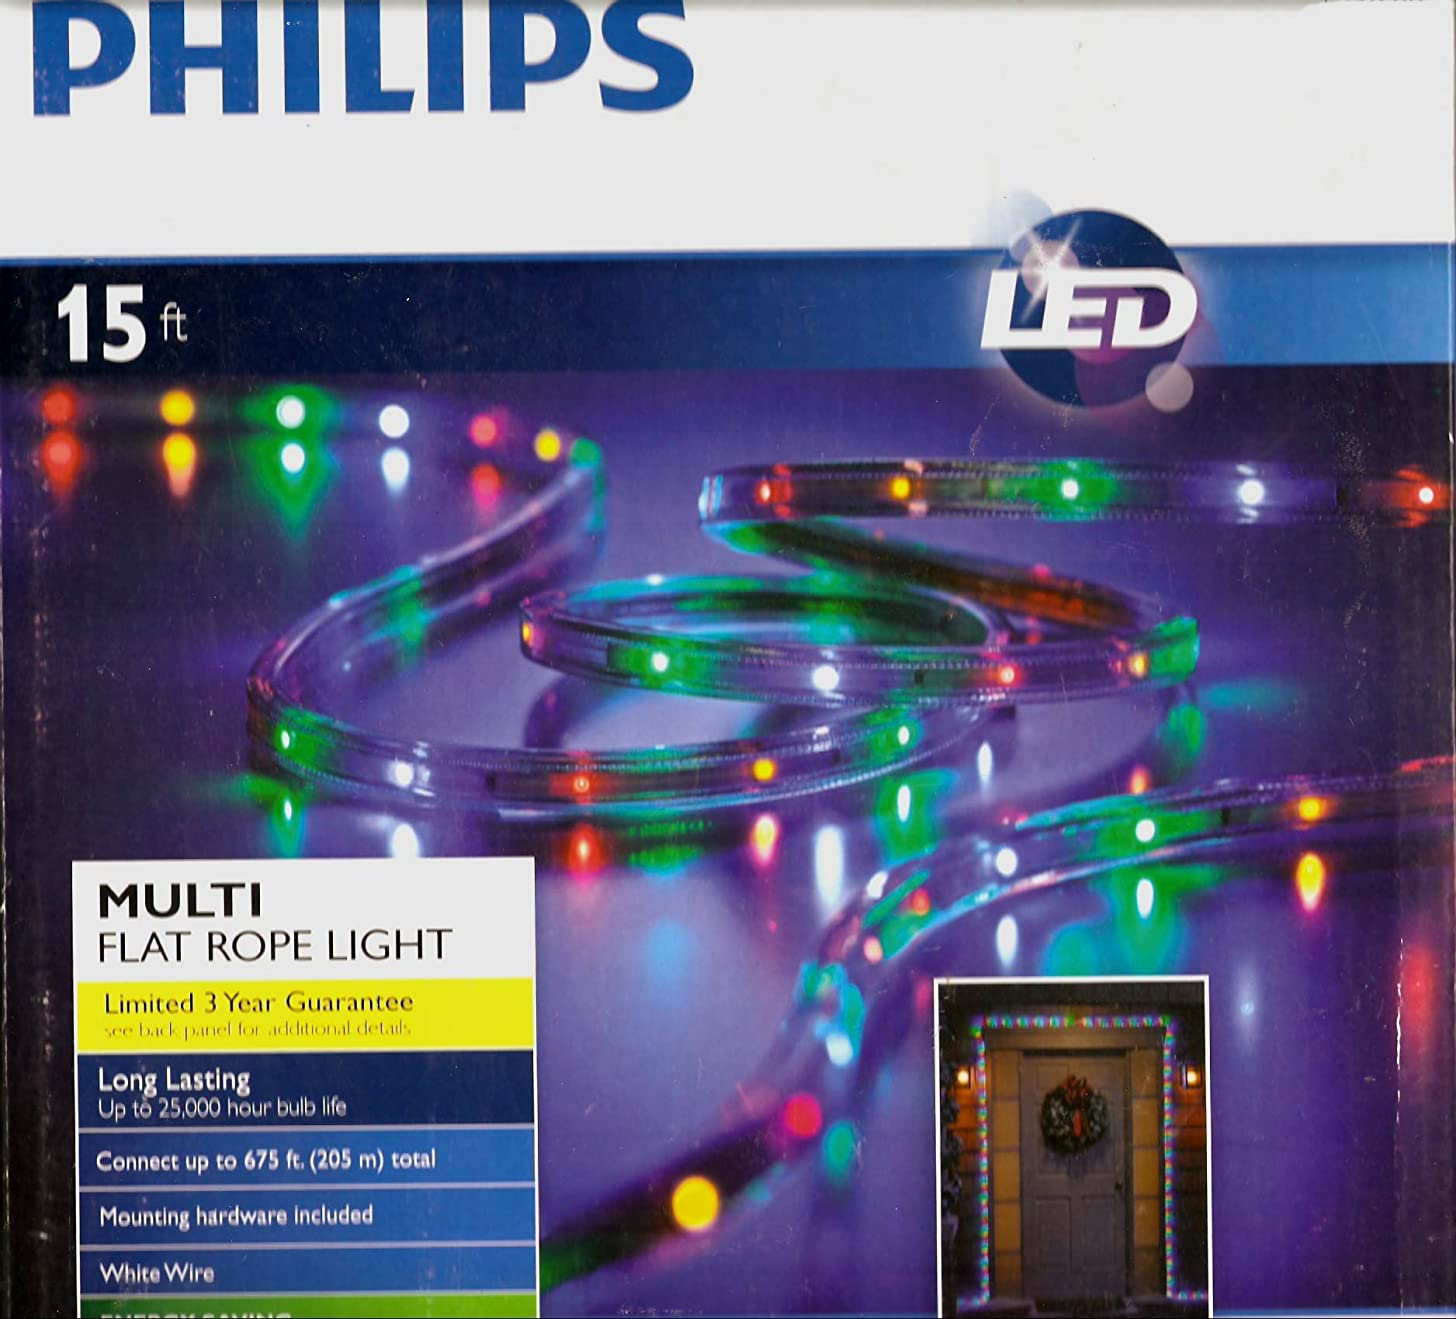 Philips 15 Ft. Multi-Color LED Flat Rope Light